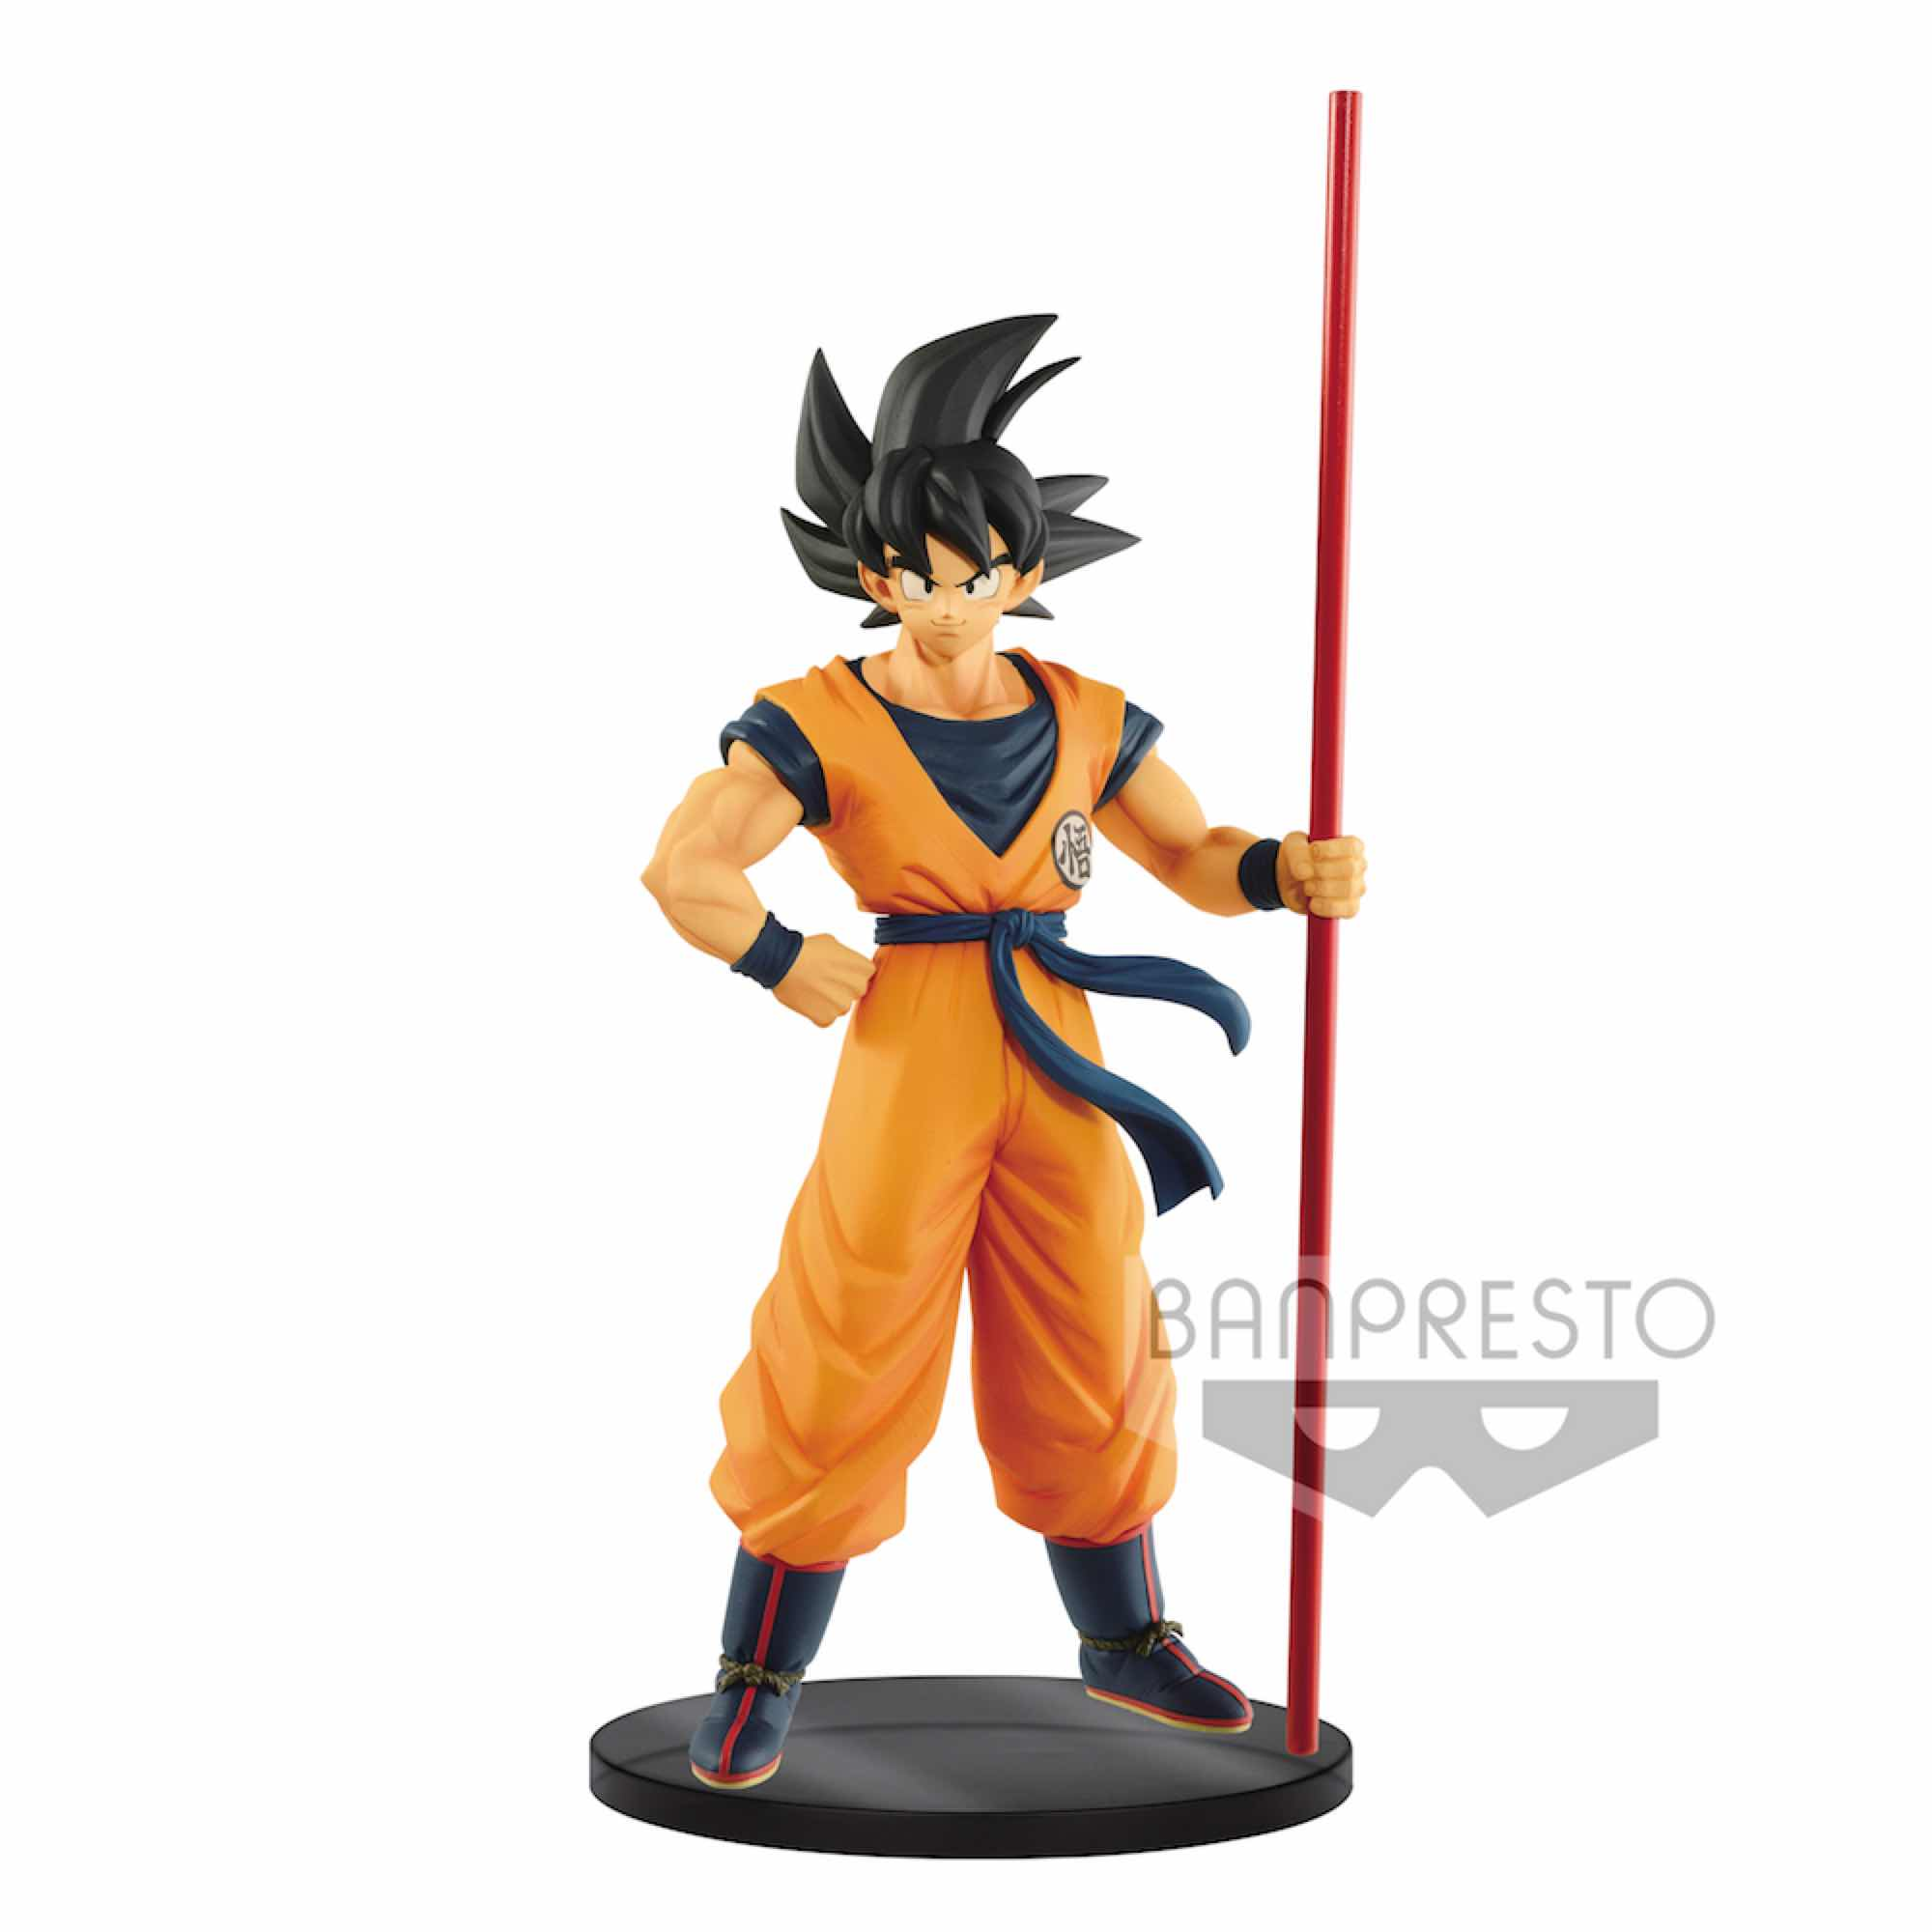 SON GOKU NEW MOVIE TEASER POSTER FIGURA 23 CM DRAGON BALL SUPER